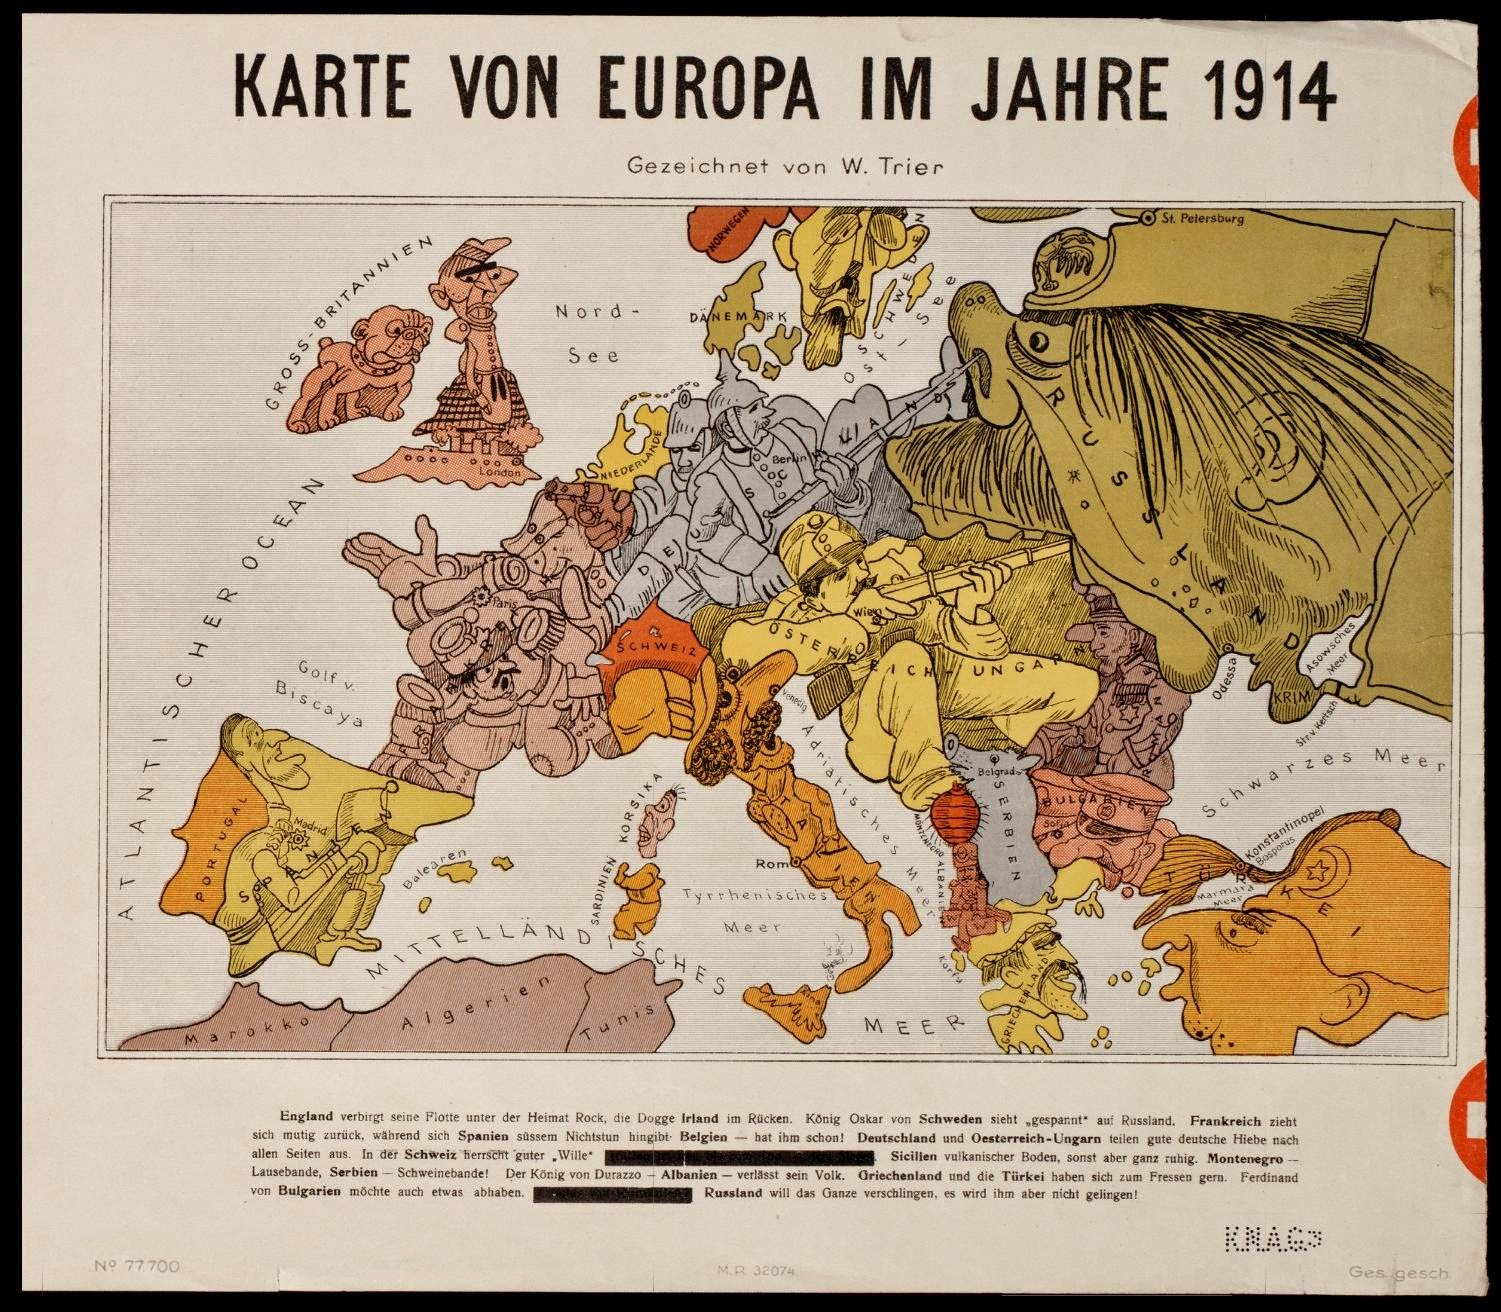 War Torn Geography Maps Of Ww1 Europe Napoleonic And